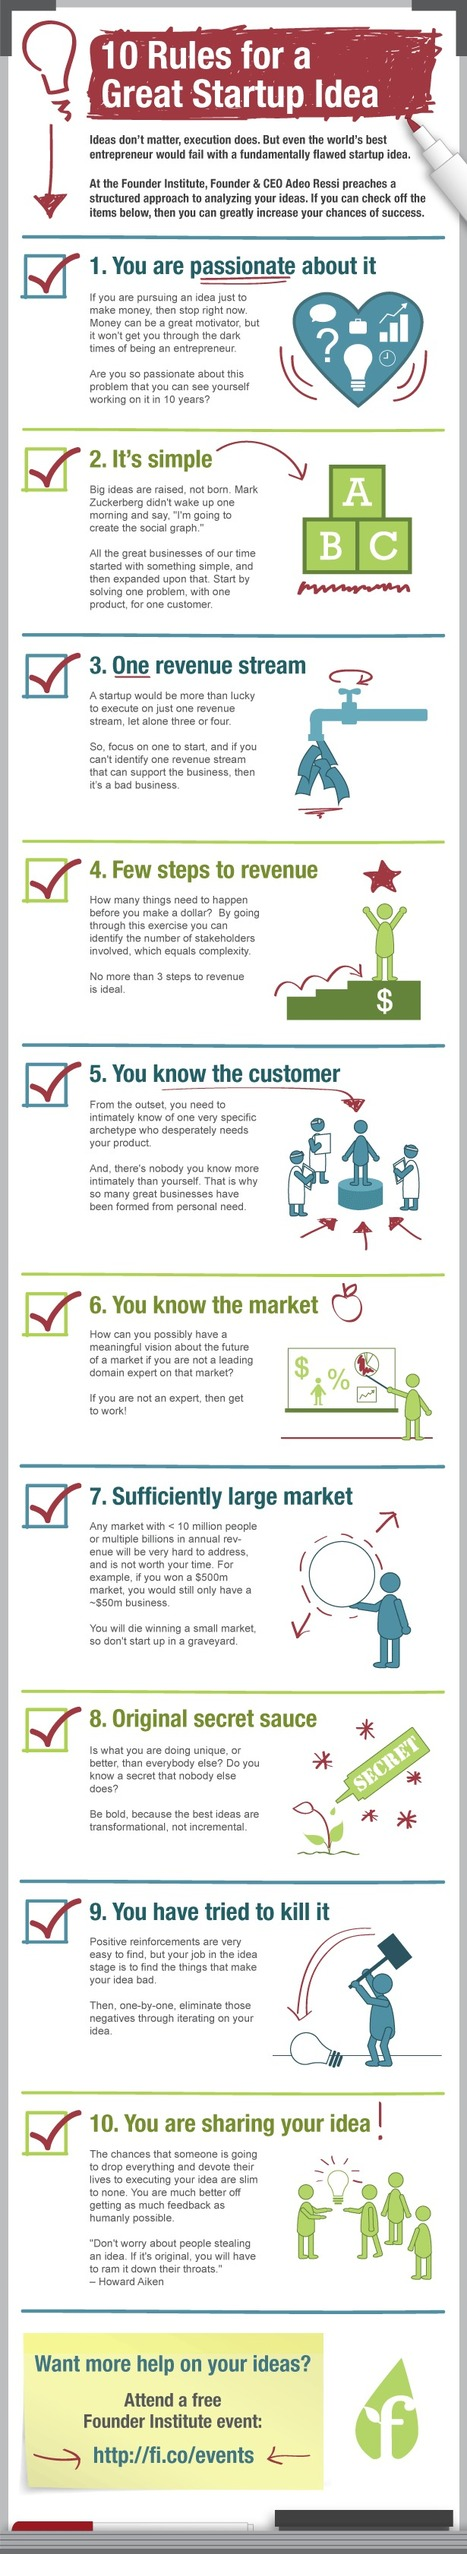 10 Rules to a Great Startup Idea #infographic | marketing | Scoop.it